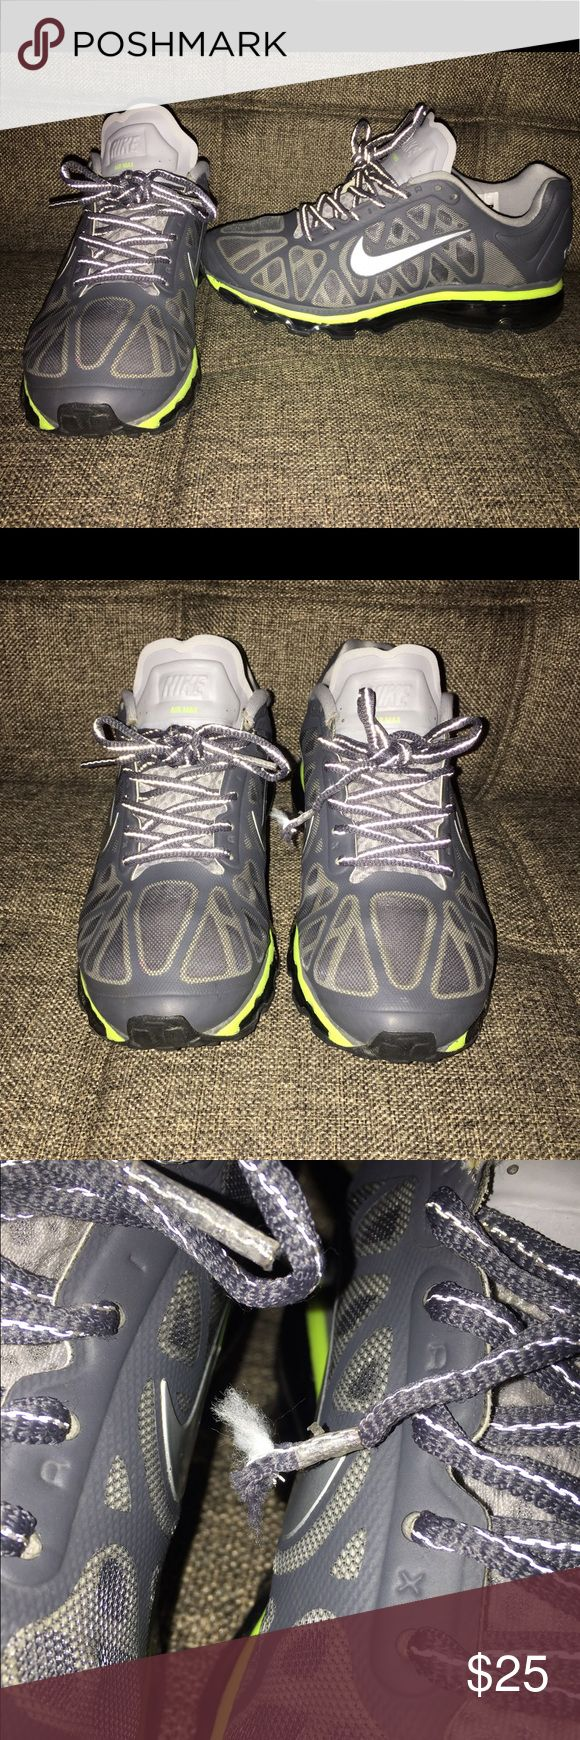 Nike Airmax Nike Airmax Grey/neon green size 6.5 youth 8.5 women, good used condition still has a lot of life left a few scuffs (shown in pics) and fraying of one end of shoe lace (also in pics) but overall good condition. Nike Shoes Sneakers